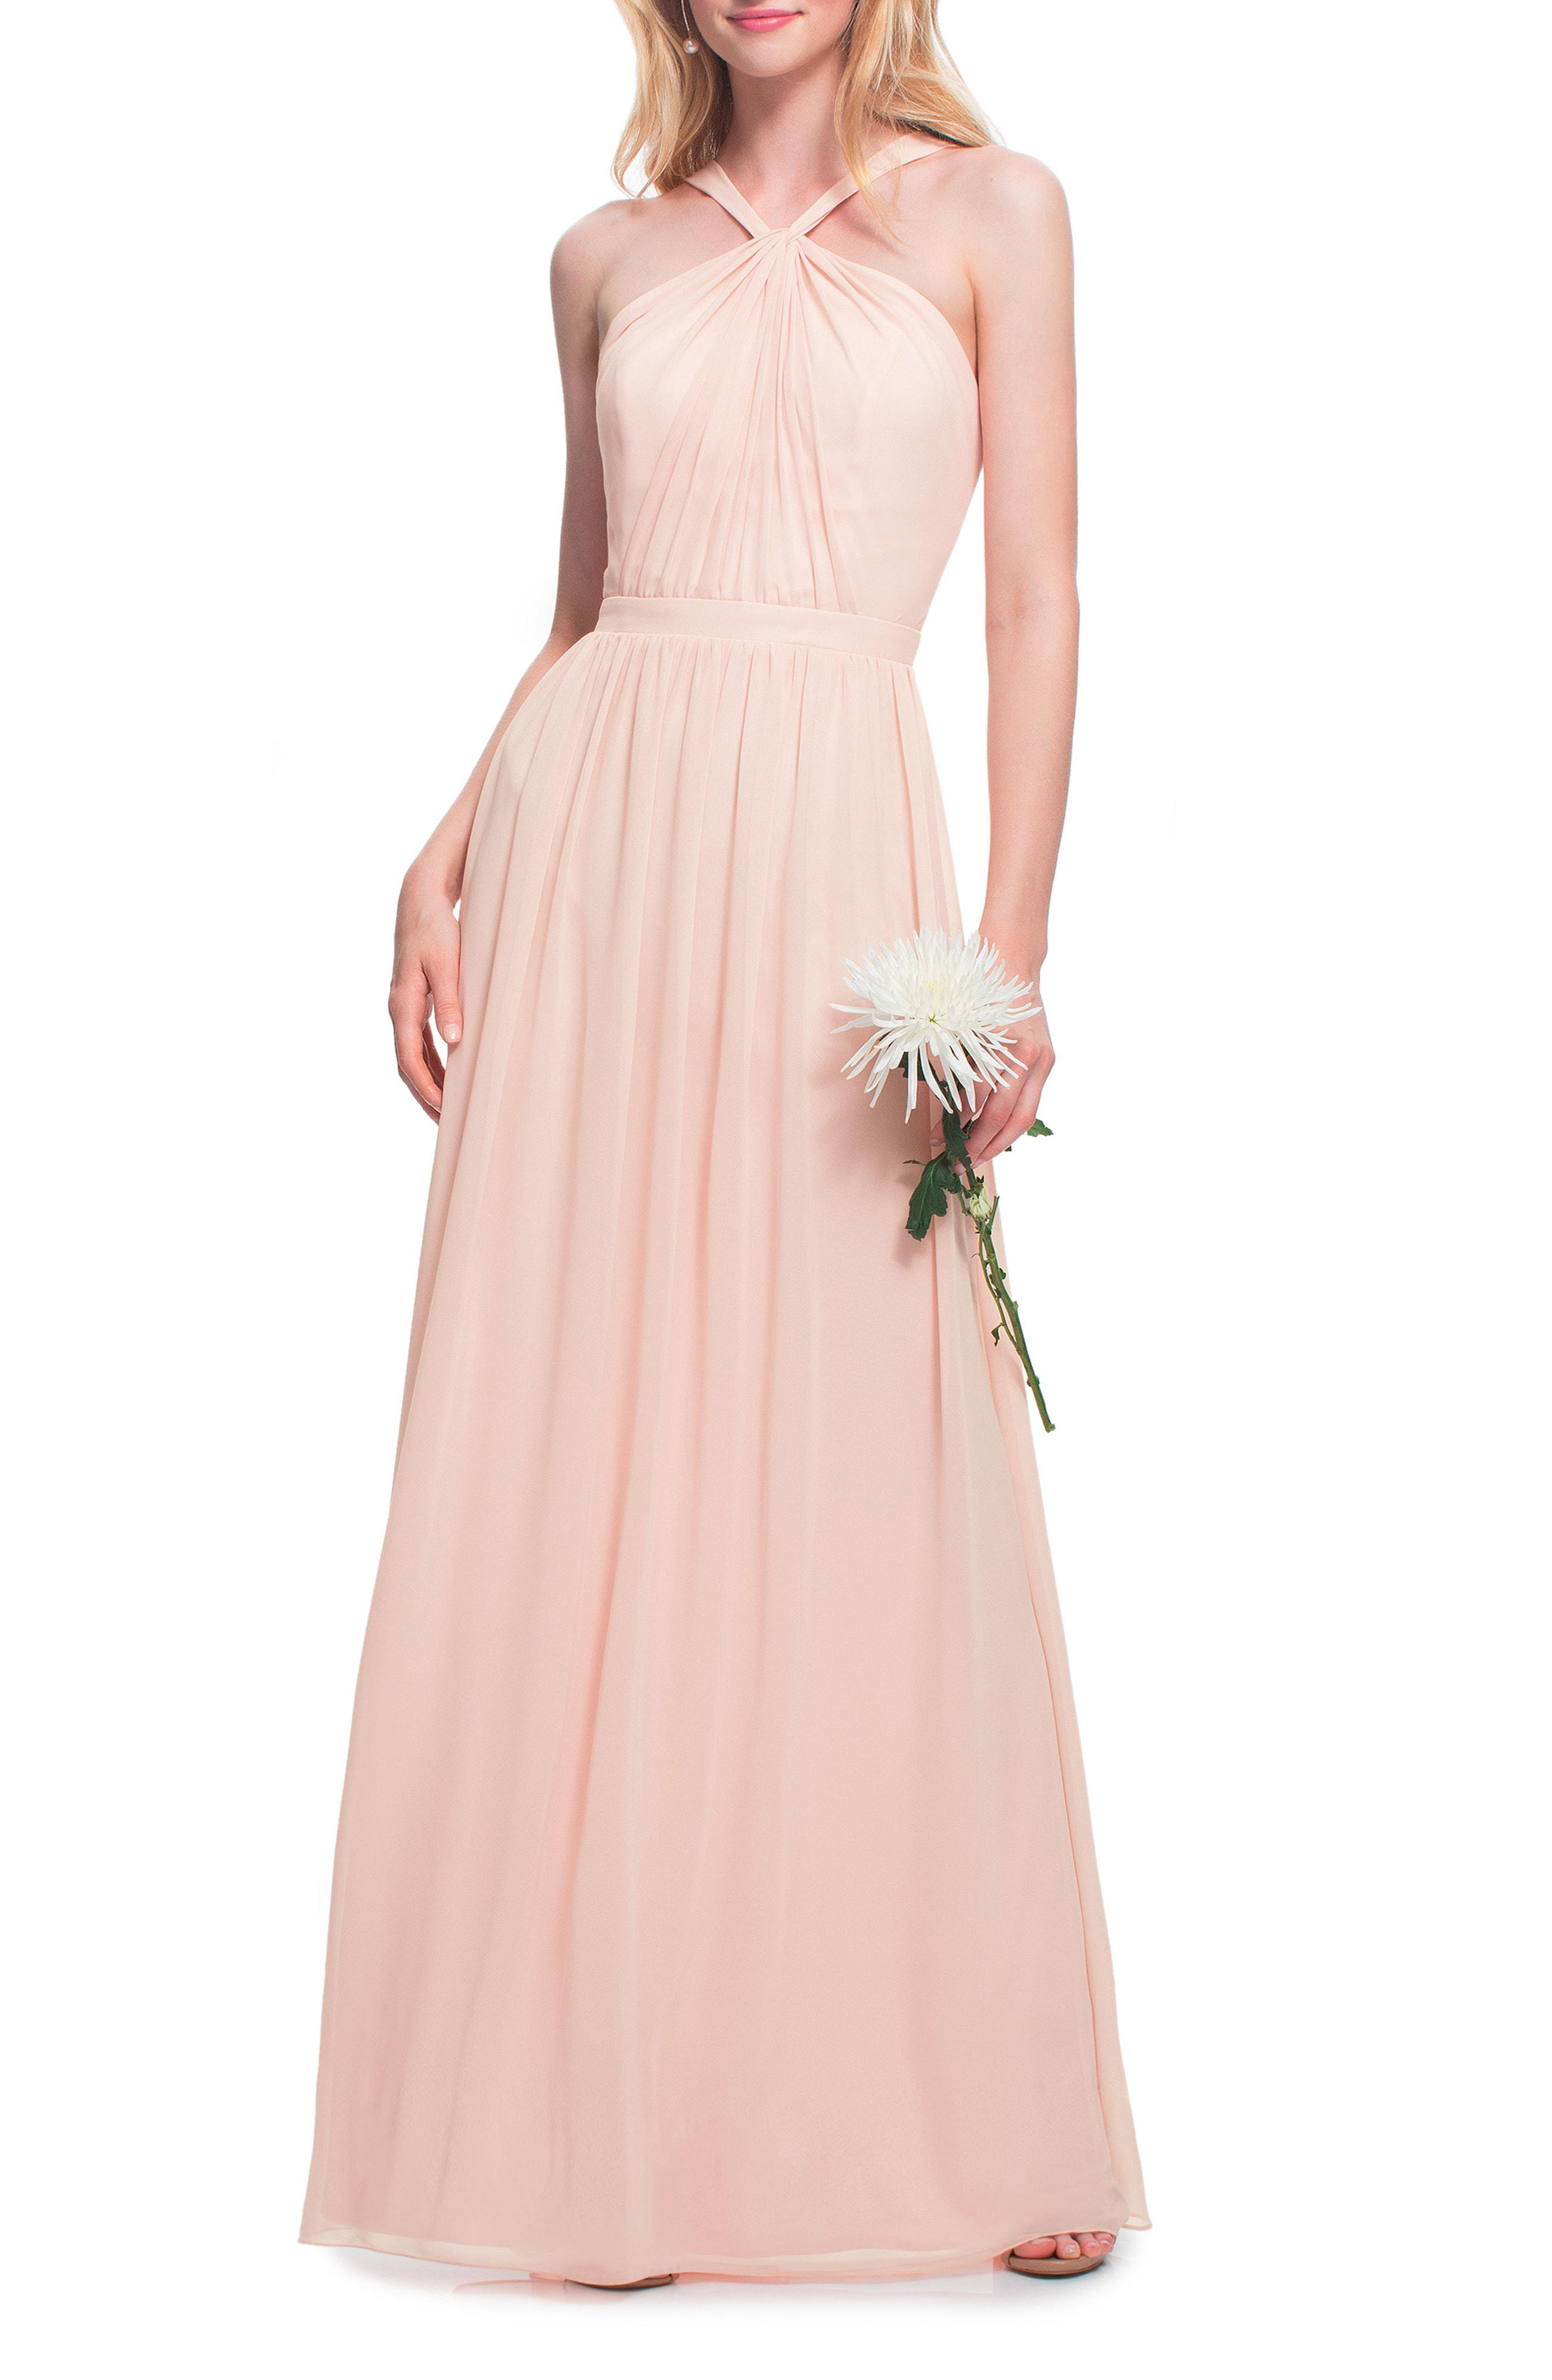 afb2d2ec845 Lyst - Bill Levkoff   Halter Neck Chiffon Gown in Pink